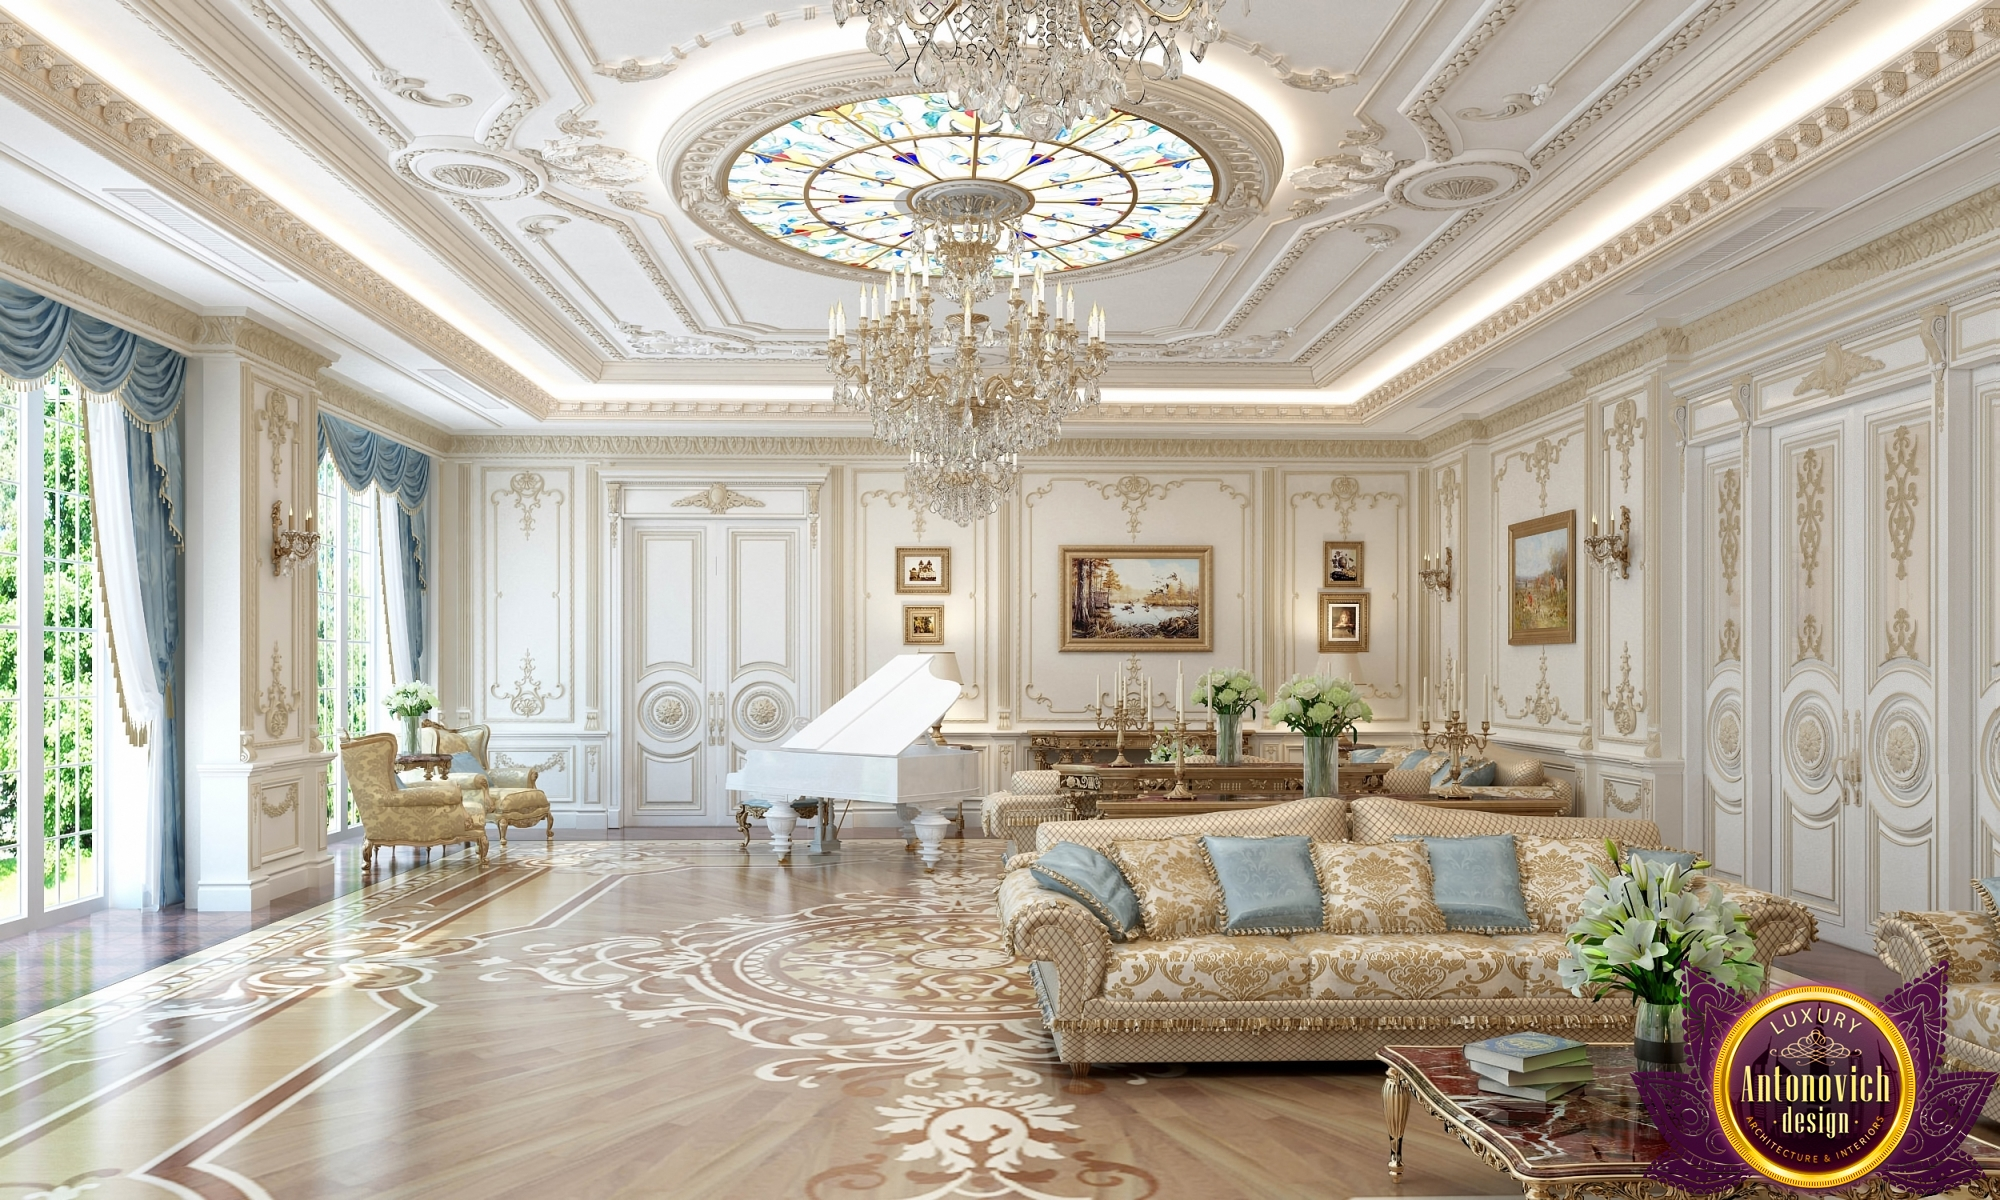 Beautiful Girl Bedroom Wallpaper Free Photo Royal Room Pretty Living Images Free